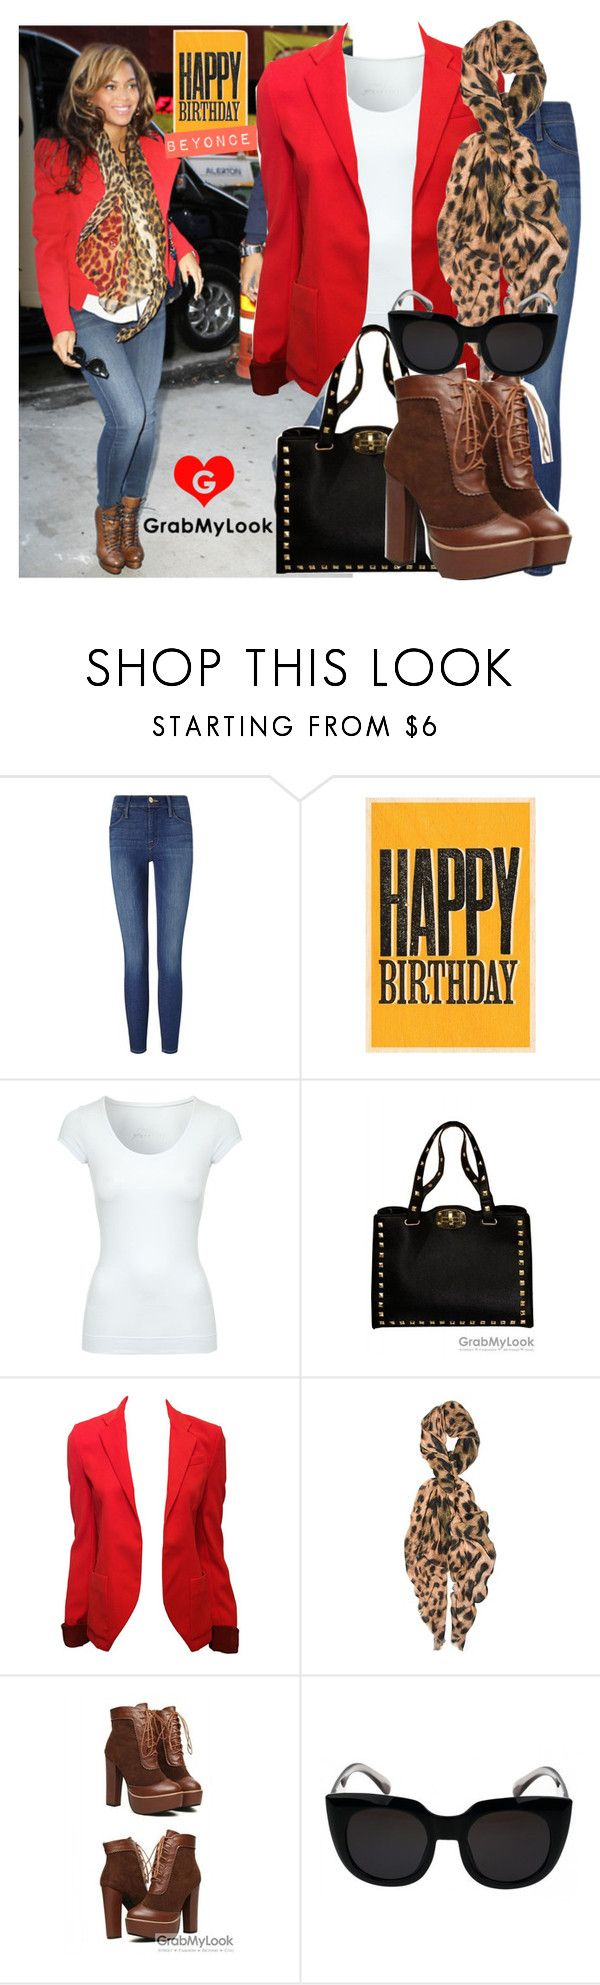 """""""GrabMyLook Tribute to Beyonce - Happy Birthday!"""" by grabmylookfashion ❤ liked on Polyvore featuring Frame, Jane Norman and Feather & Stone"""